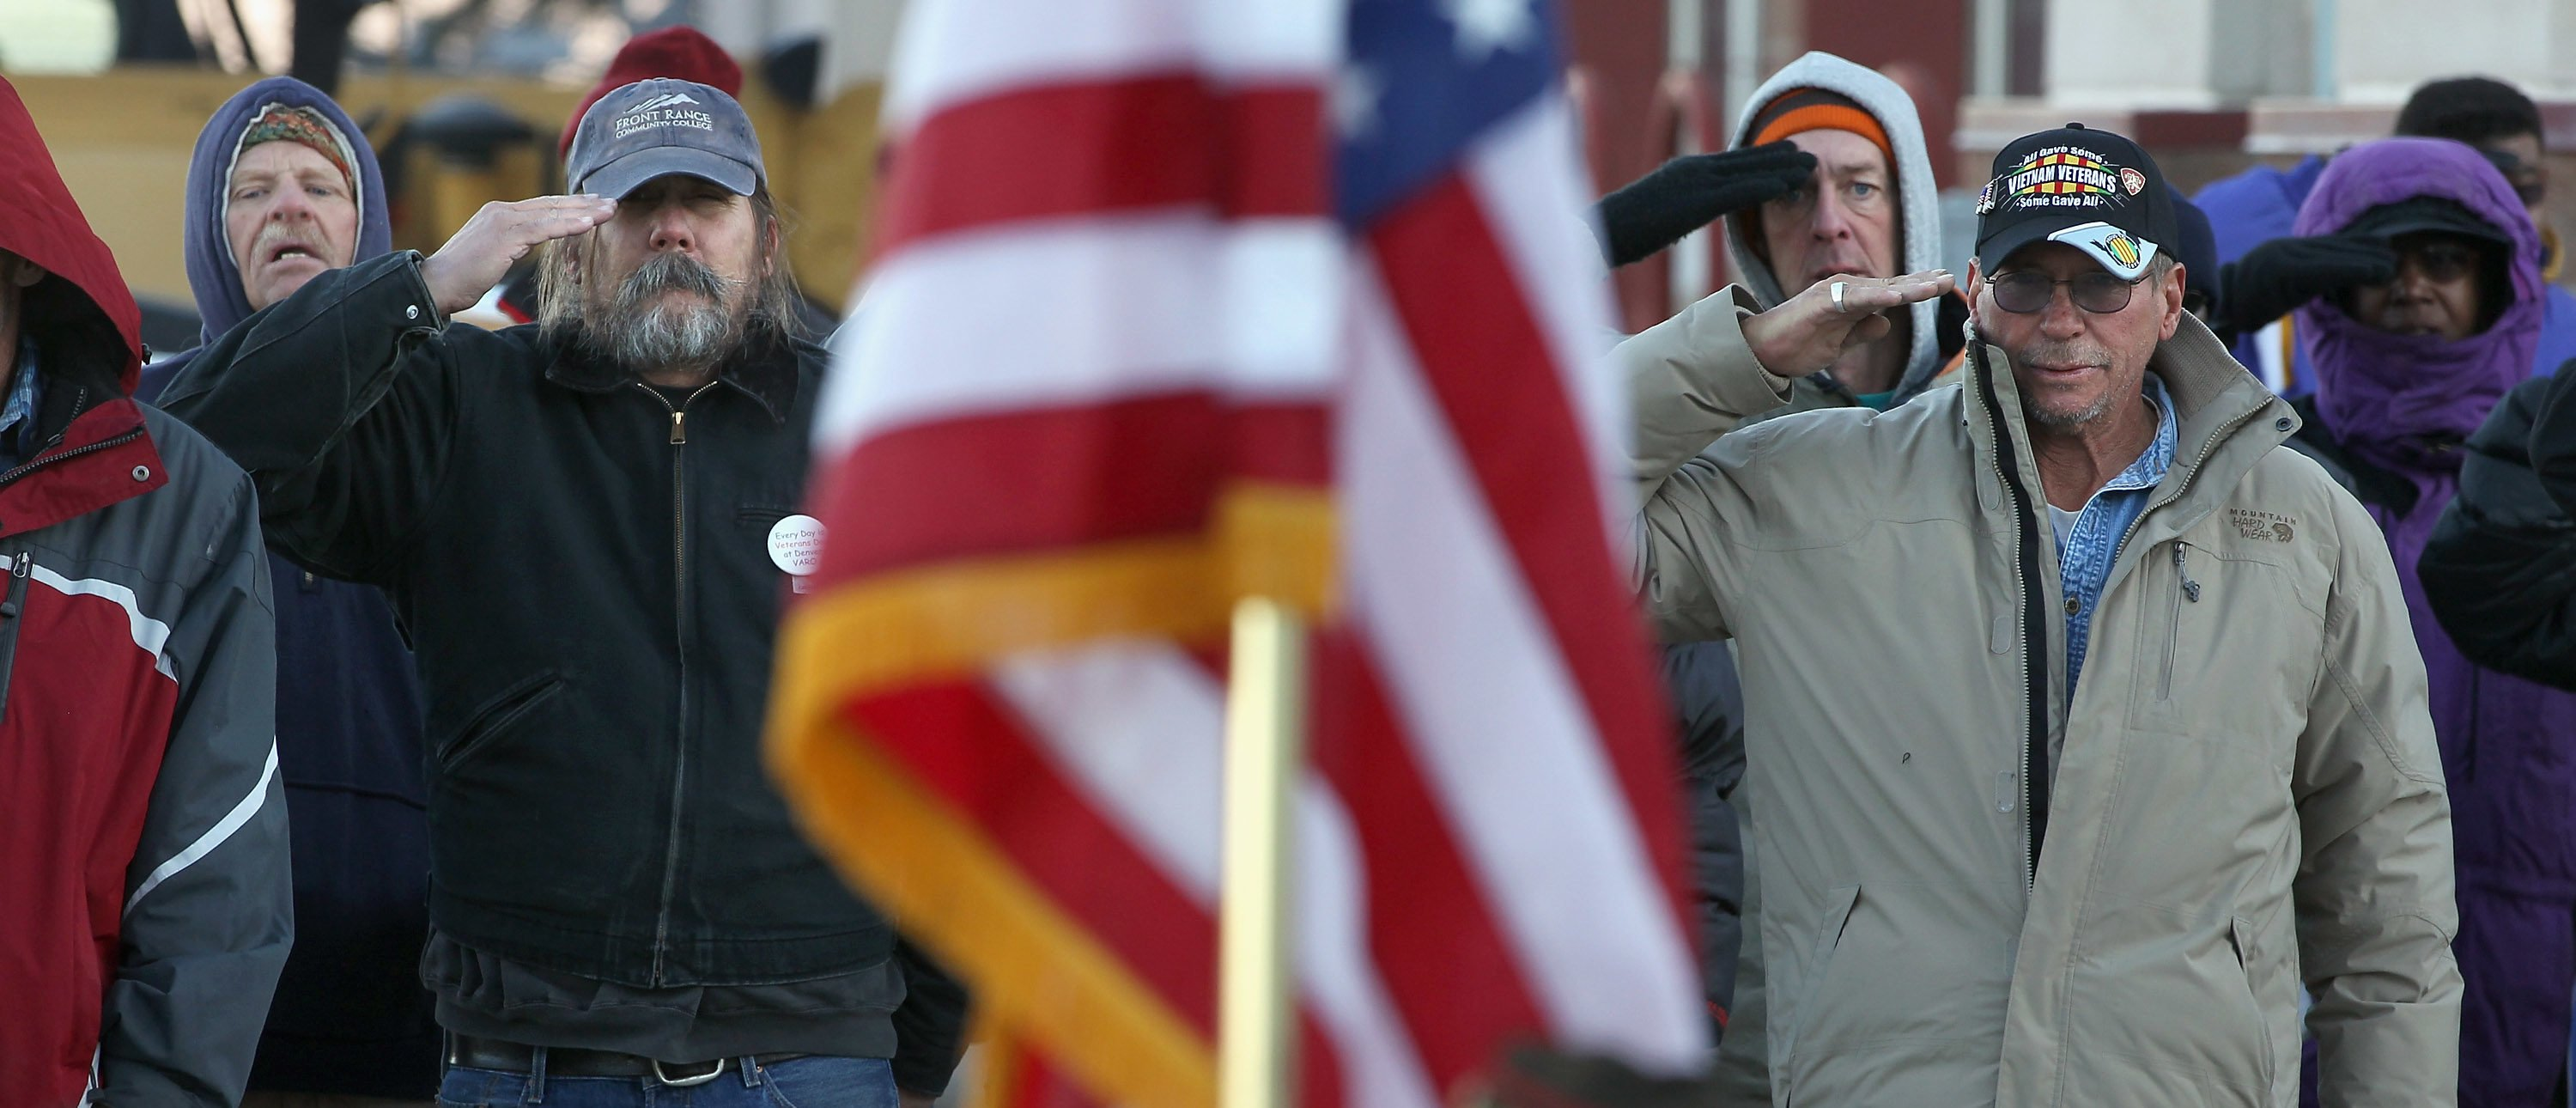 "DENVER, CO - NOVEMBER 03: Homeless U.S. military veterans salute the flag during the Pledge of Allegiance at a ""Stand Down"" event hosted by the Department of Veterans Affairs on November 3, 2011 in Denver, Colorado. A week ahead of Veterans Day, more than 500 homeless veterans were expected to attend the event, where they received free clothing, medical care, employment assistance and were able to see a judge to resolve legal issues. Organizers say the homeless veterans population has surged in recent years with the high national unemployment rate. Stand Down is a military term that means a temporary stop of offensive military action. (Photo by John Moore/Getty Images)"